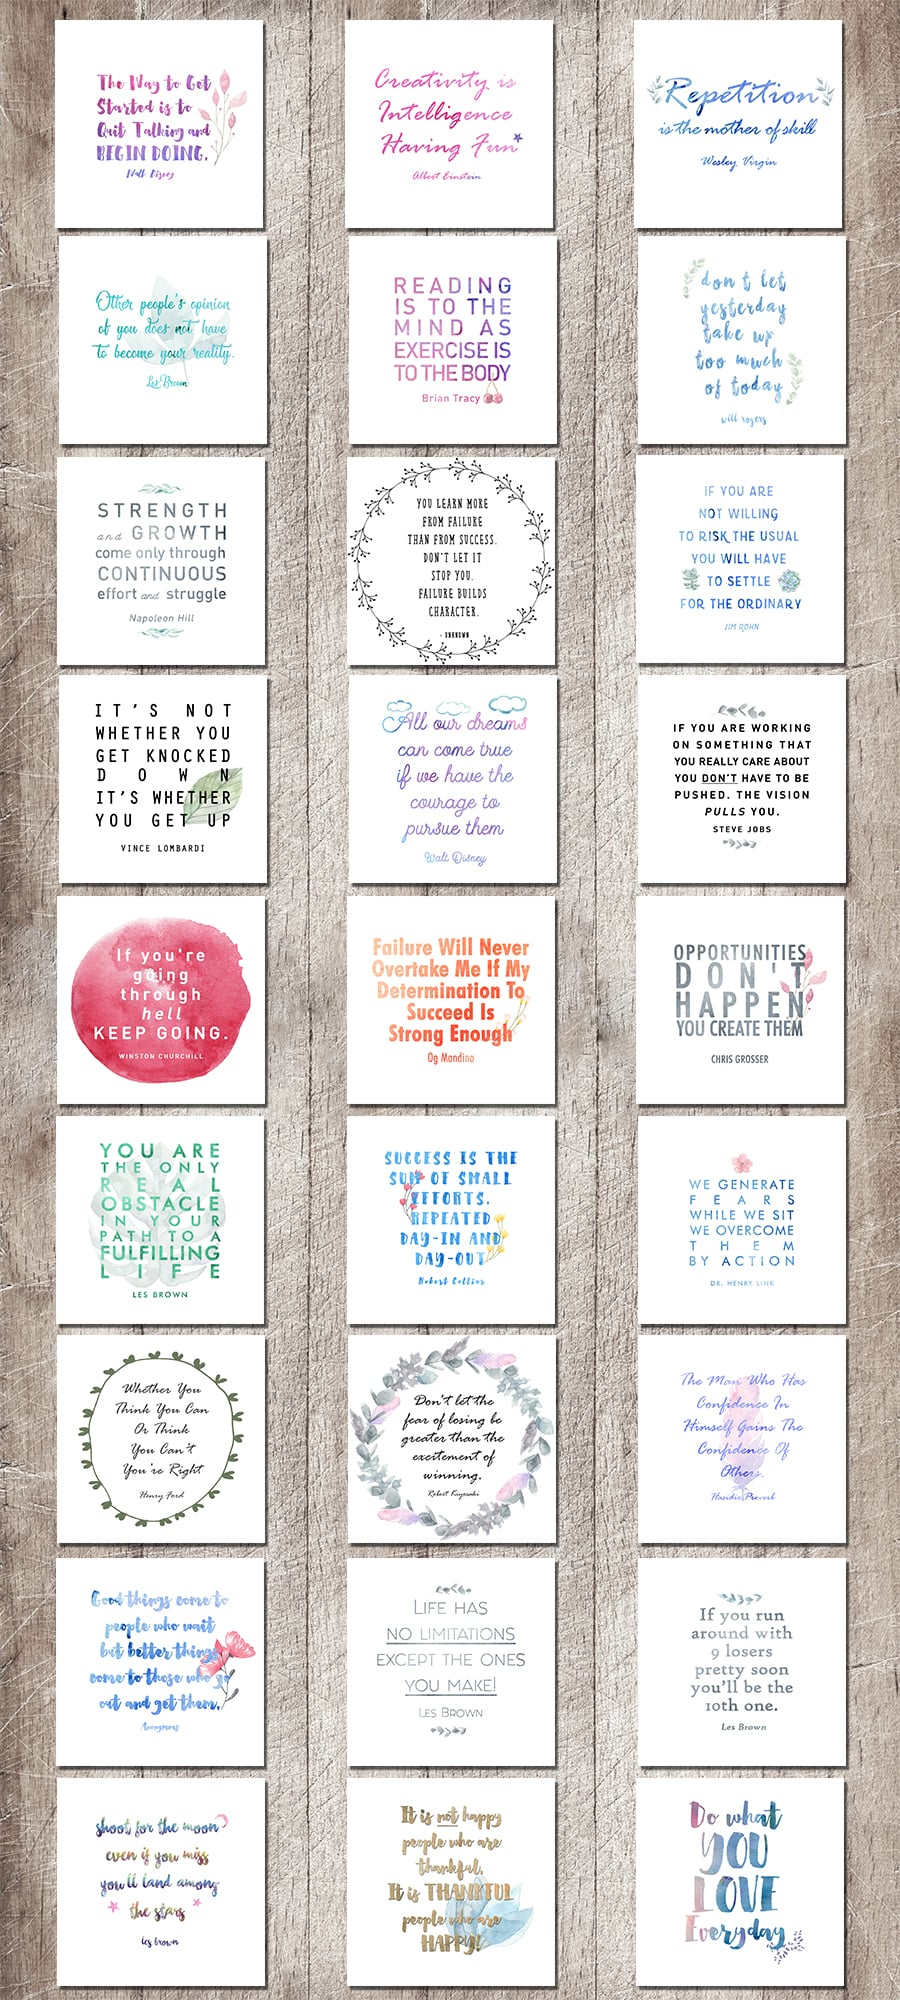 Life Planner: Make 2018 Your Best Year Yet Collection - Motivational Quotes Full preview 900x2000px 4a